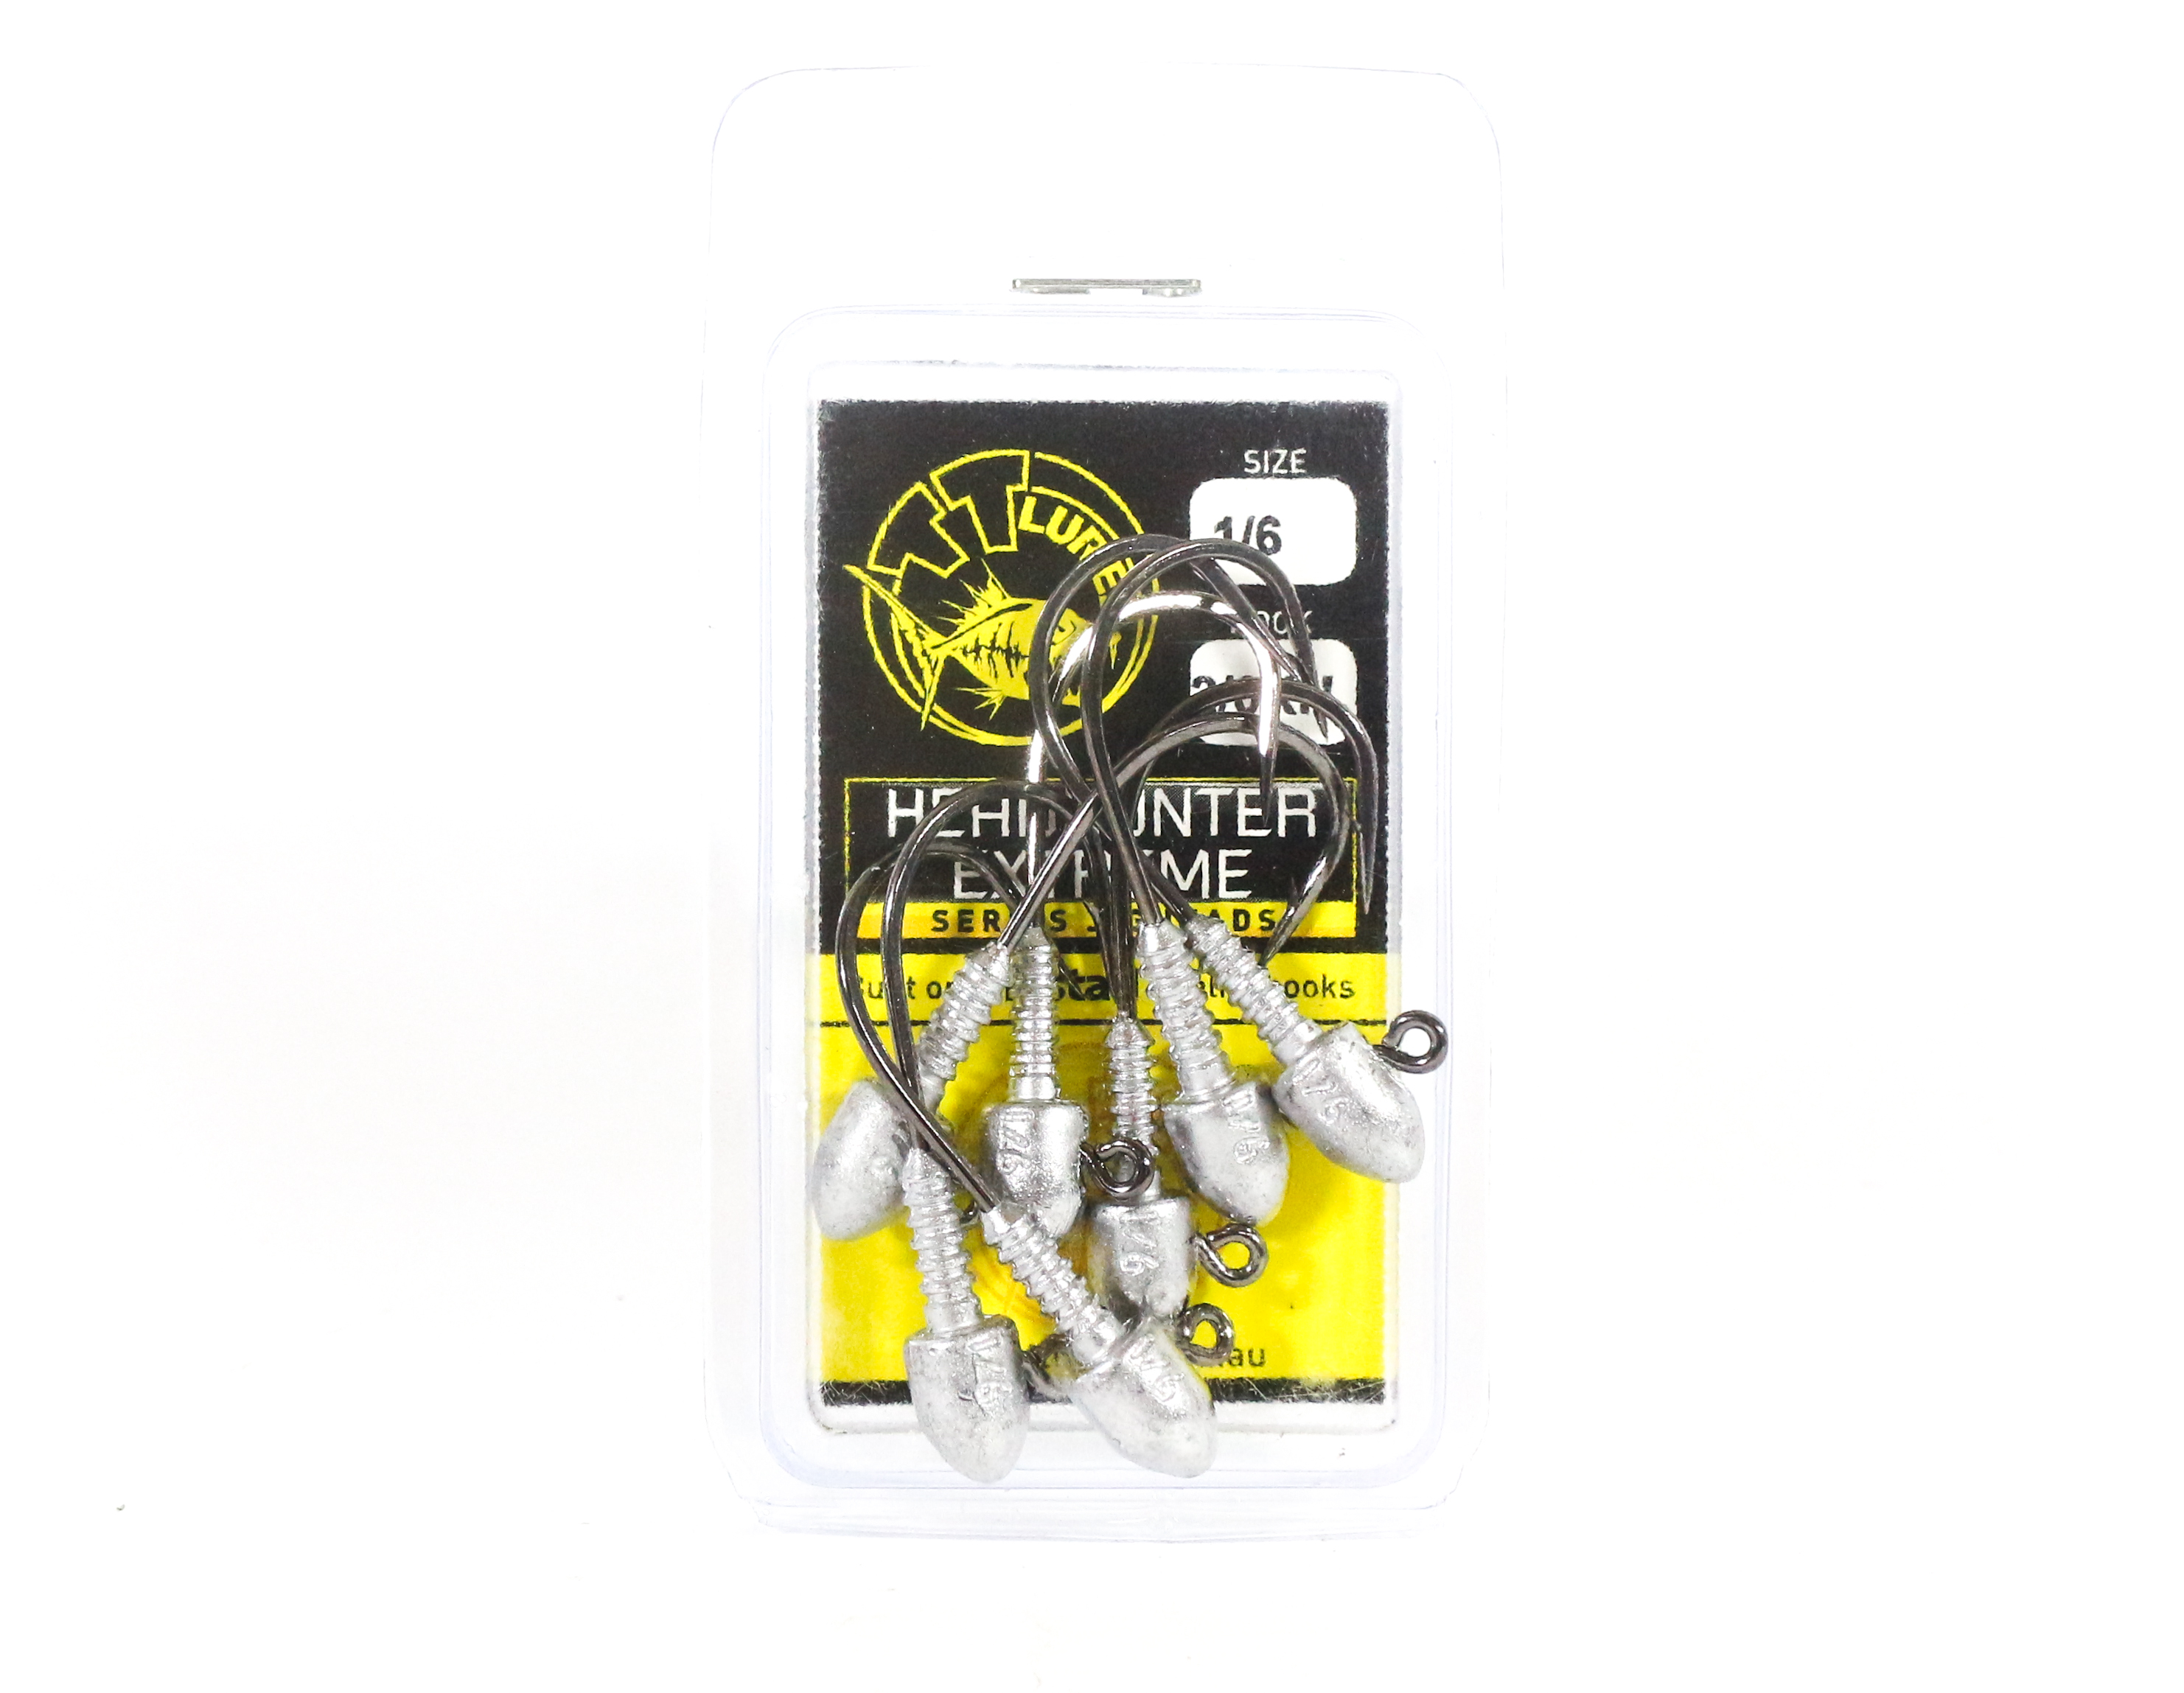 Tackle Tactics TT Head Hunter Extreme Jig Head 1/6 oz 2/0 XH 7 per pack (1494)